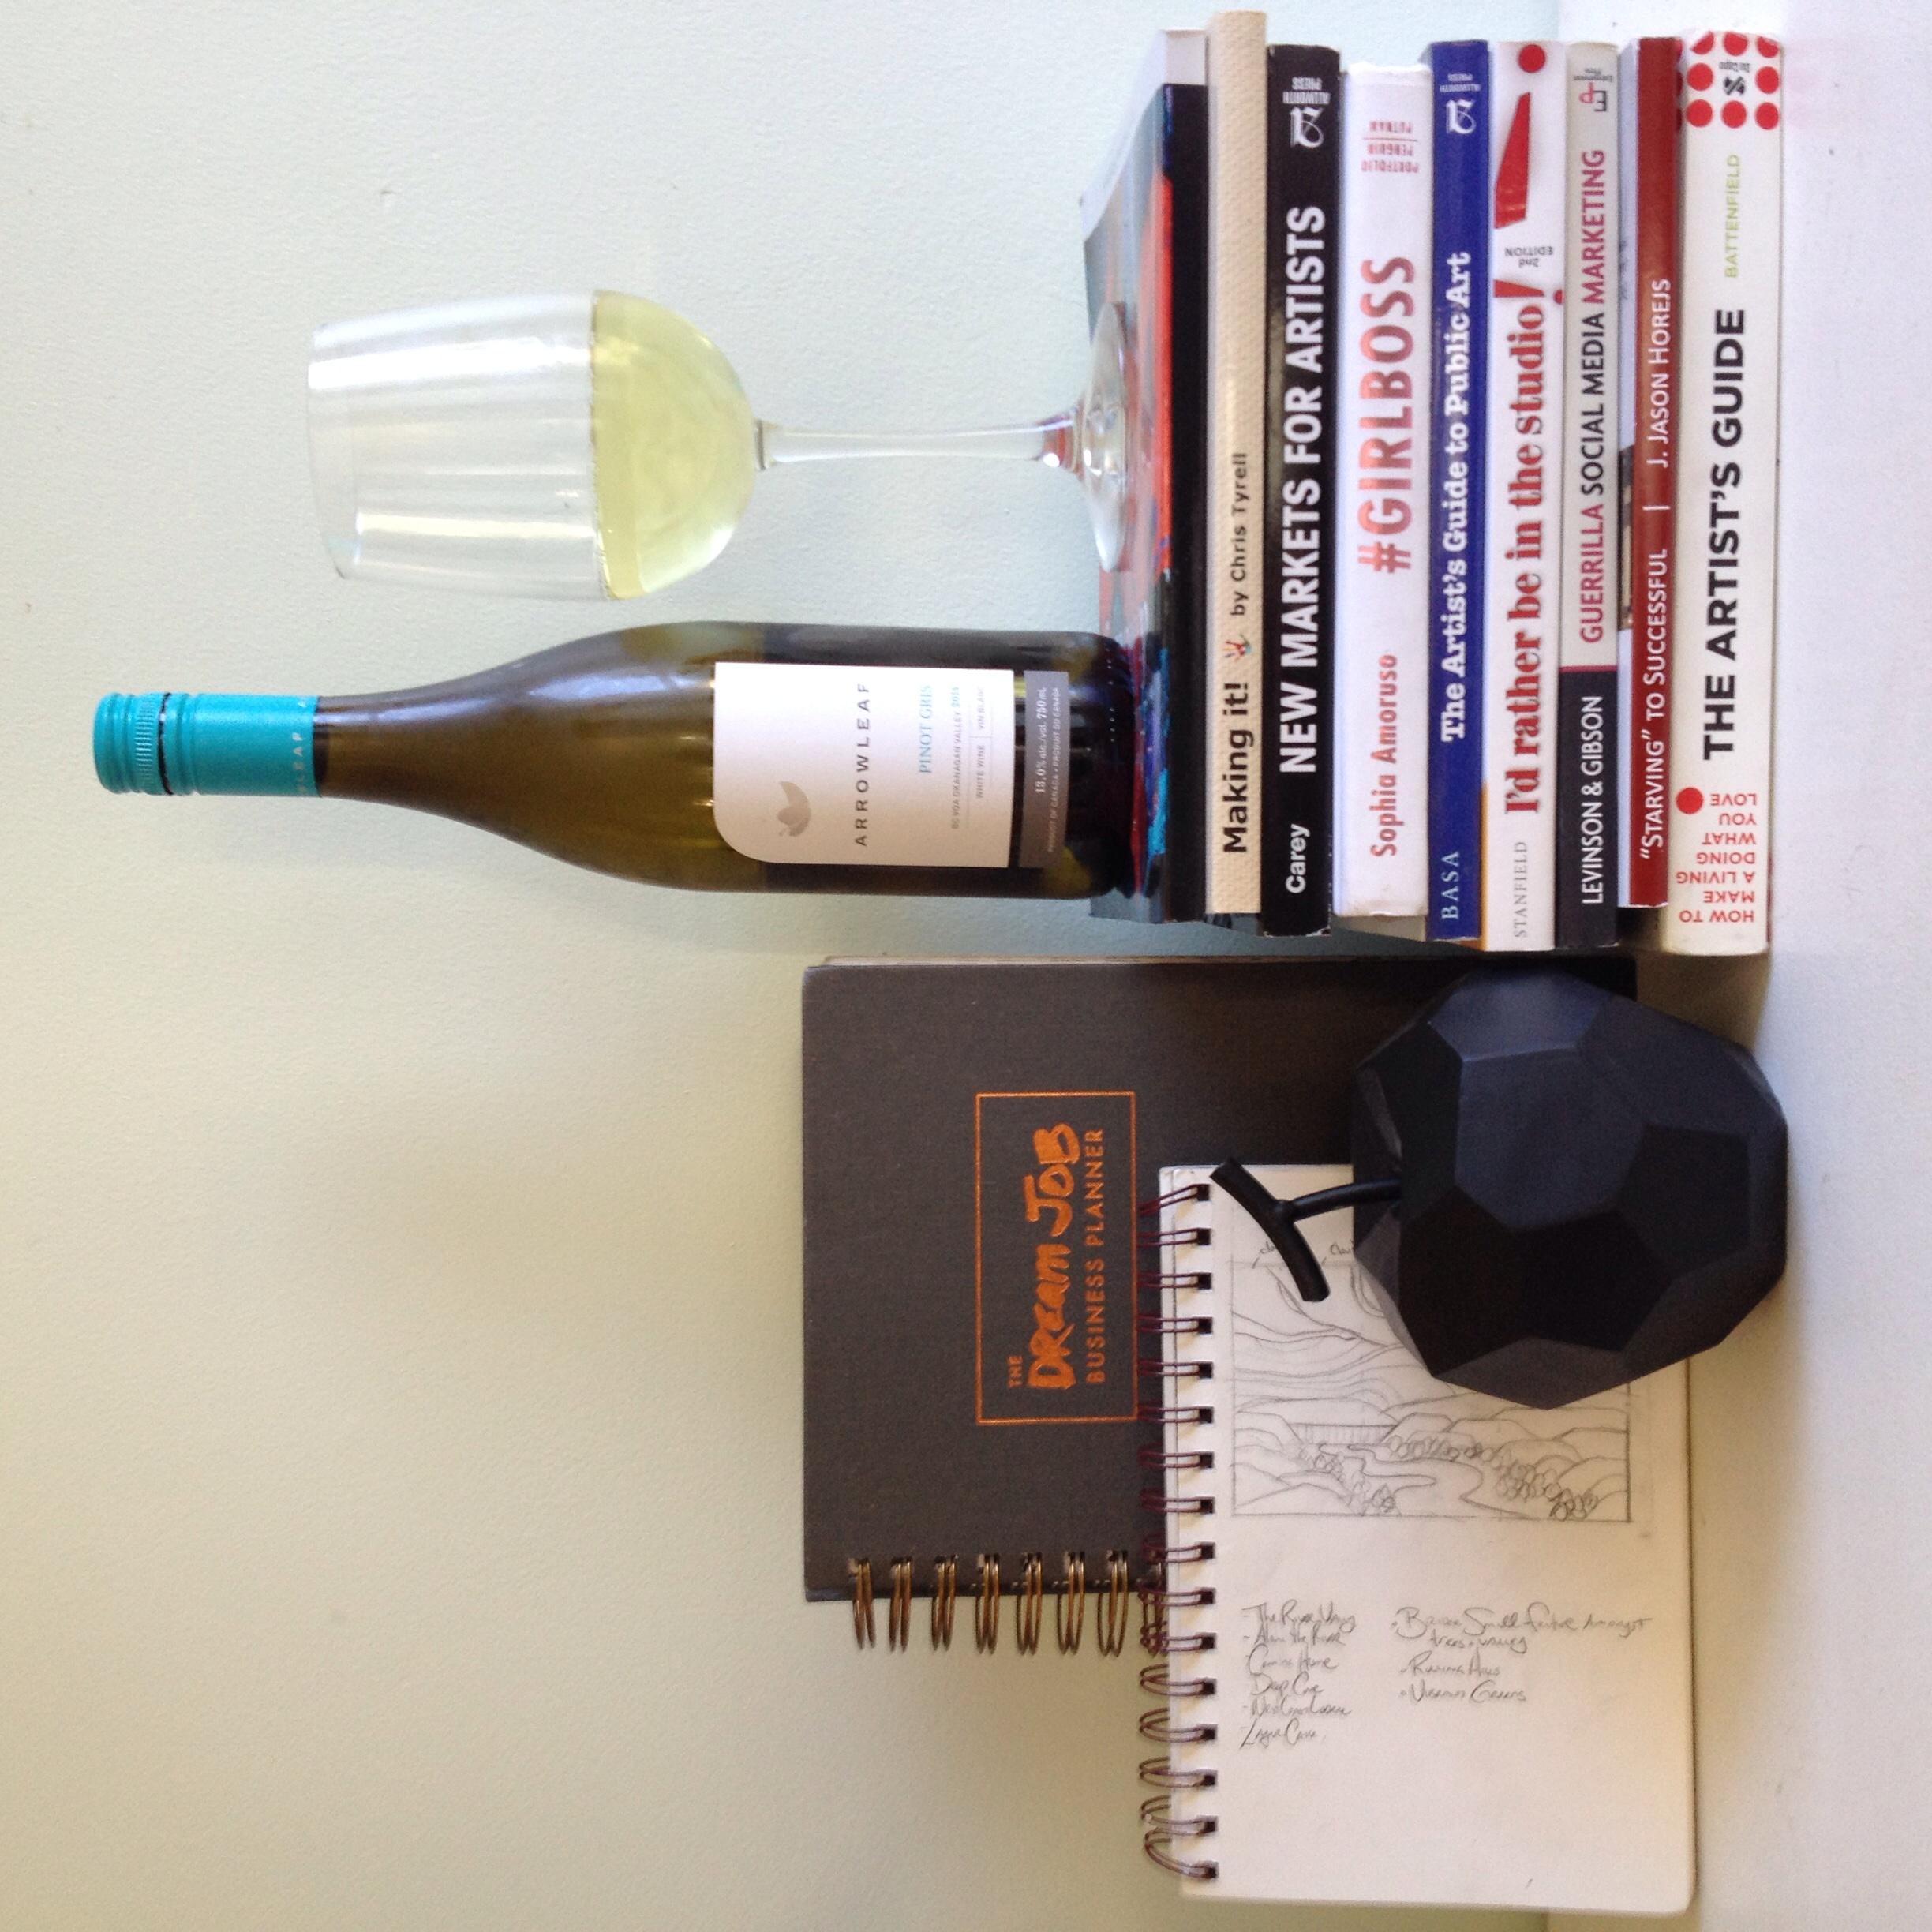 All of my art business books, my favourite Arrowleaf wine, my  Dream Job Business Planner  and my trusty sketchbook.